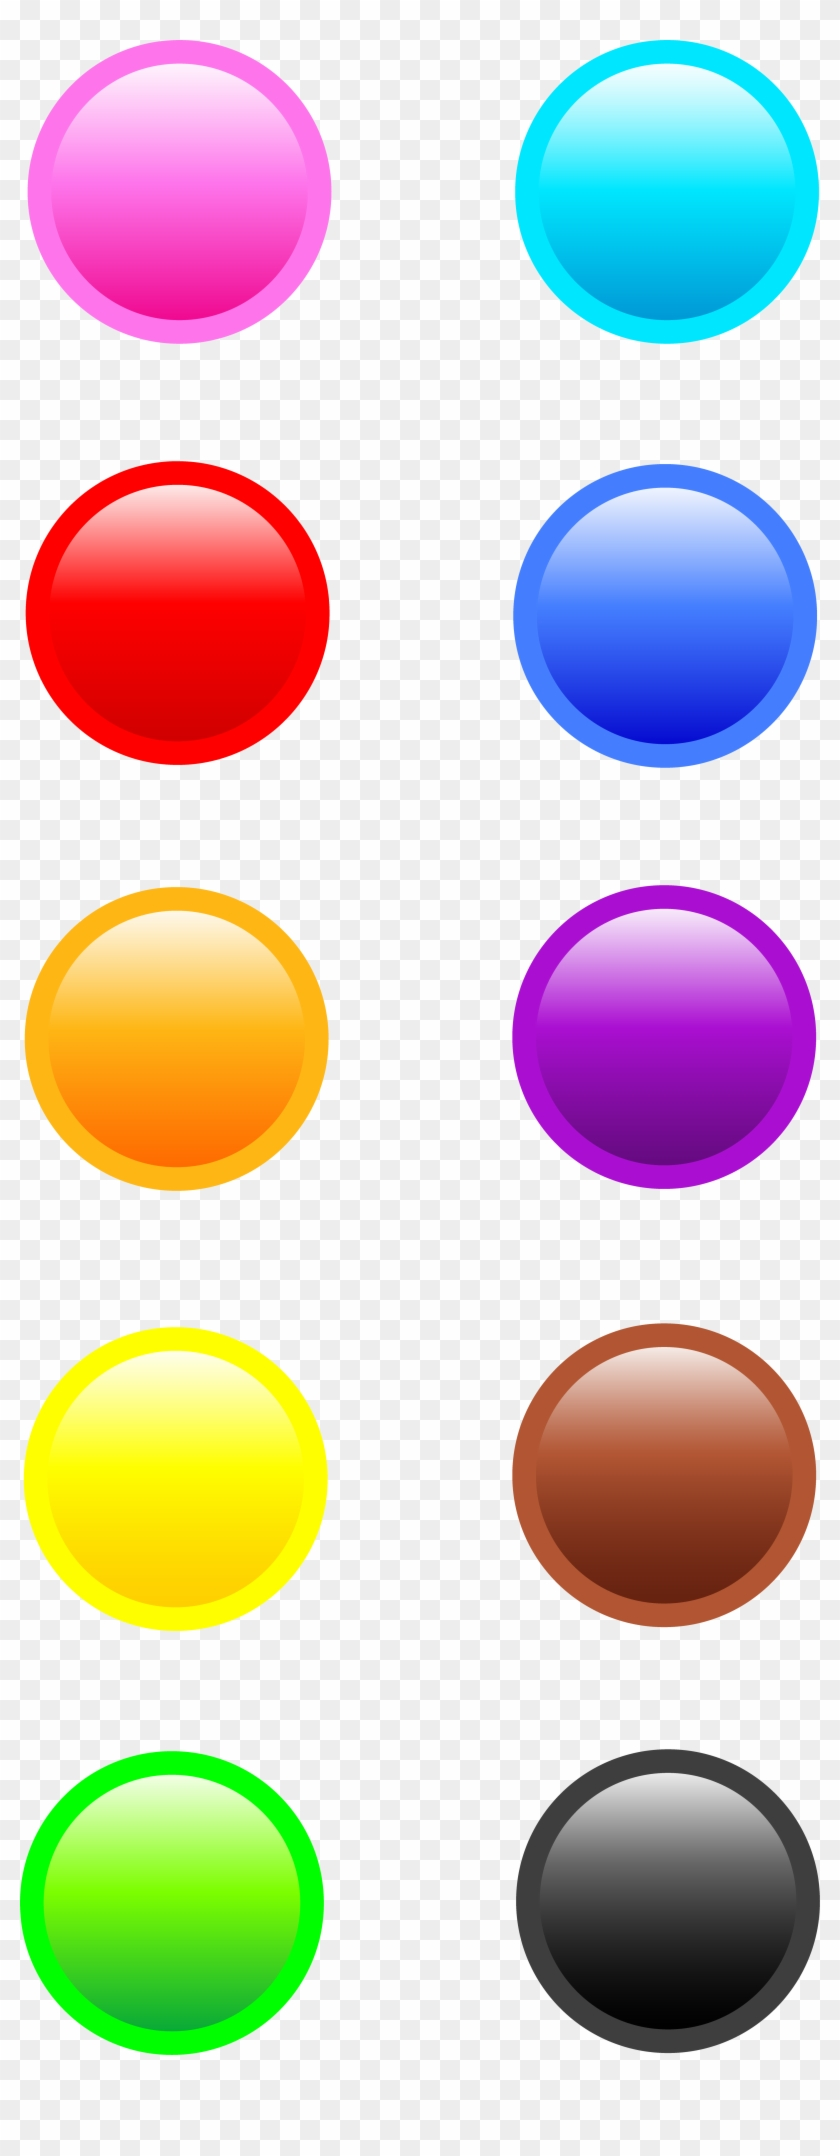 Ten Glossy Round Web Buttons - Web Round Button Png #23640